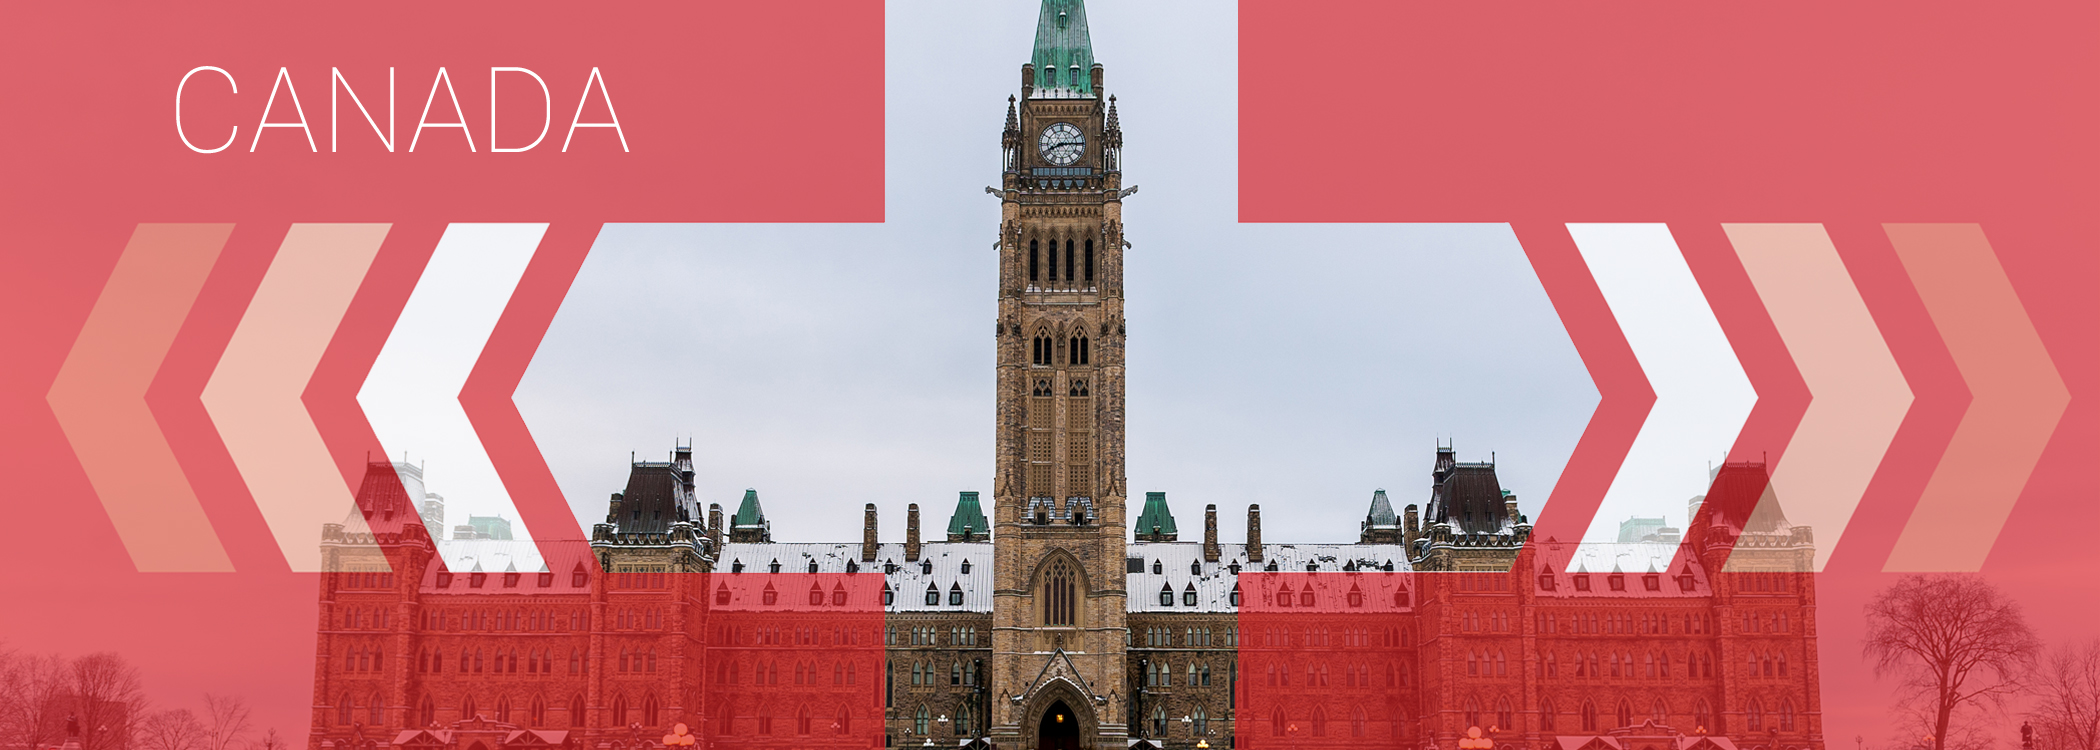 canada parliment.jpg